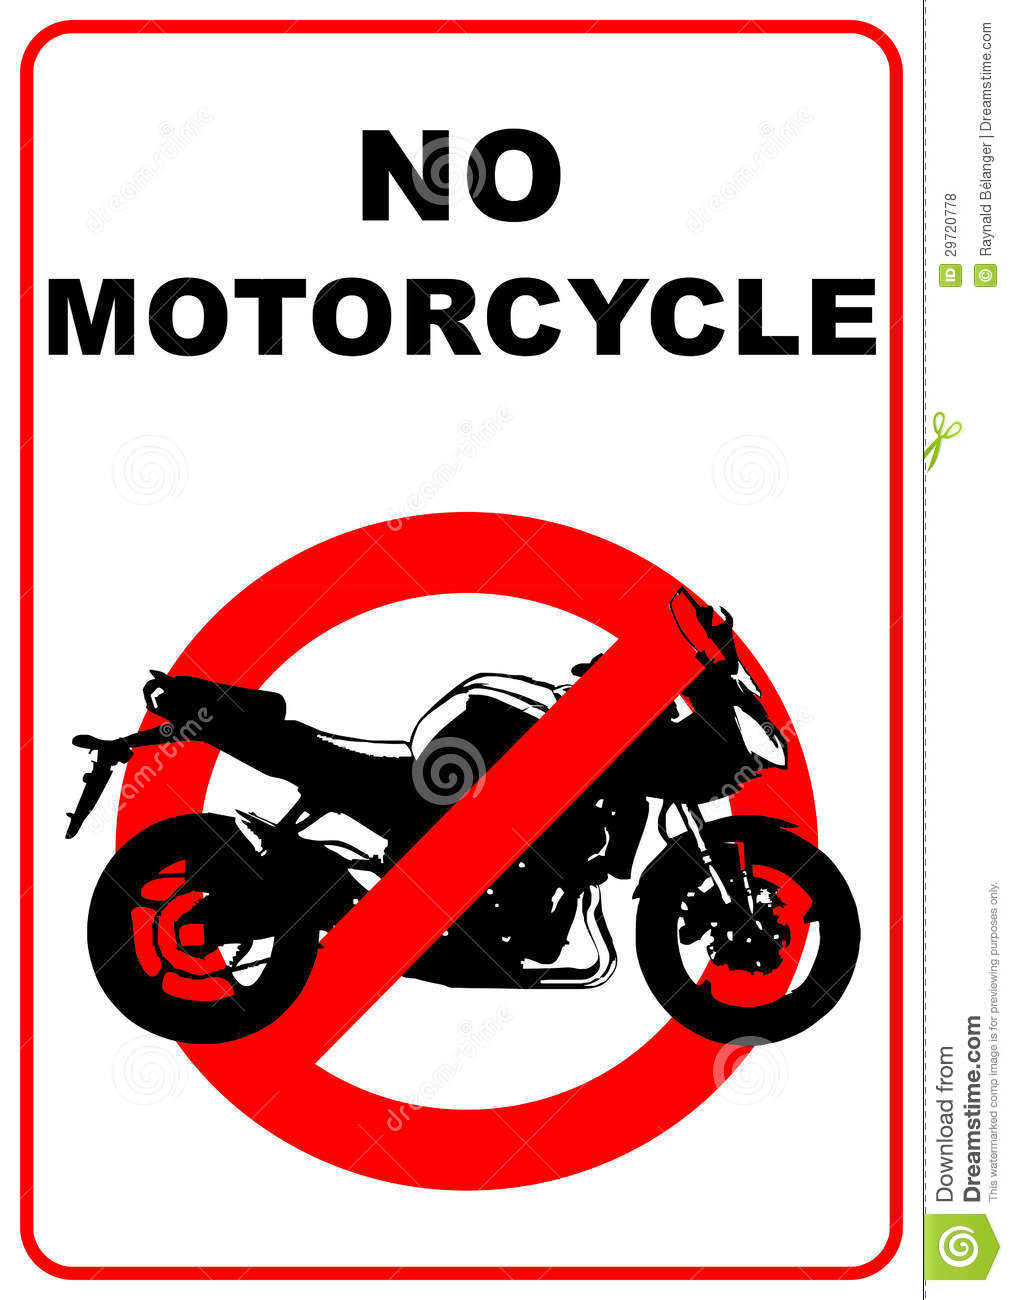 Road sign denoting no through road for motorcycles - illustration.